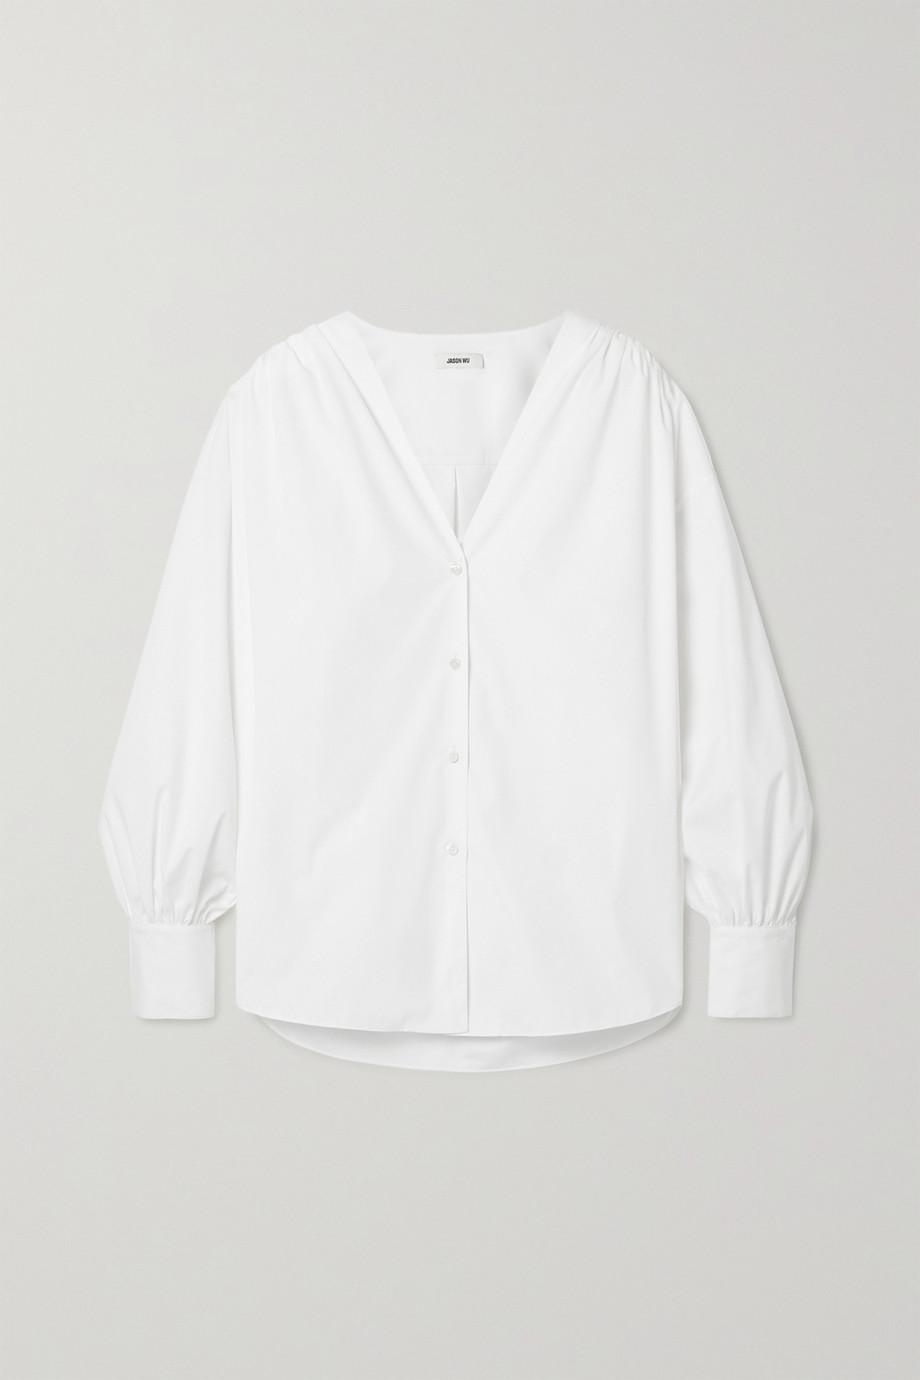 Jason Wu Oversized cotton-blend poplin shirt